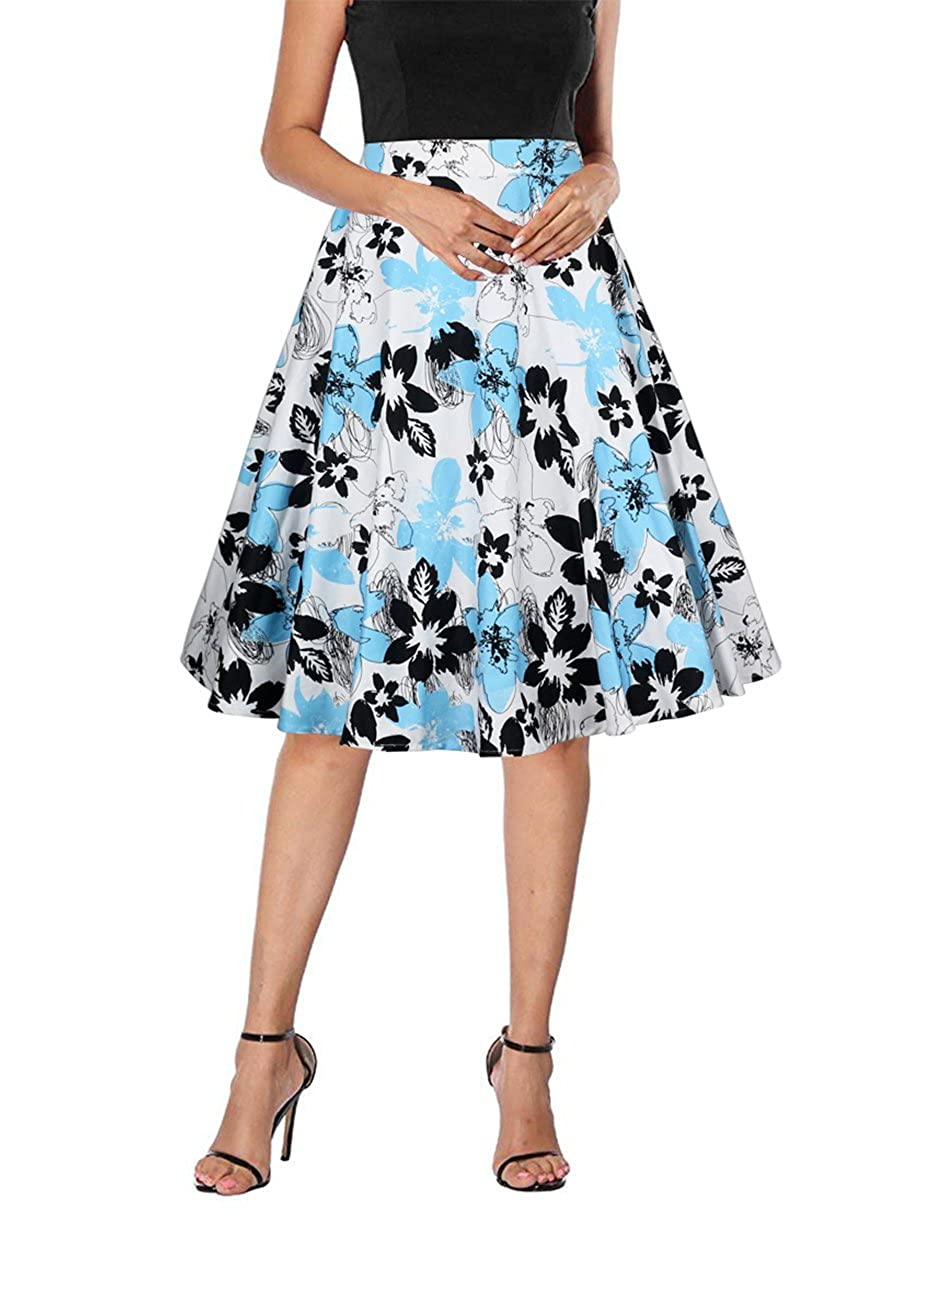 Yanmei Women's Vintage 50s Floral Skirt for Summer Spring Casual Skirt